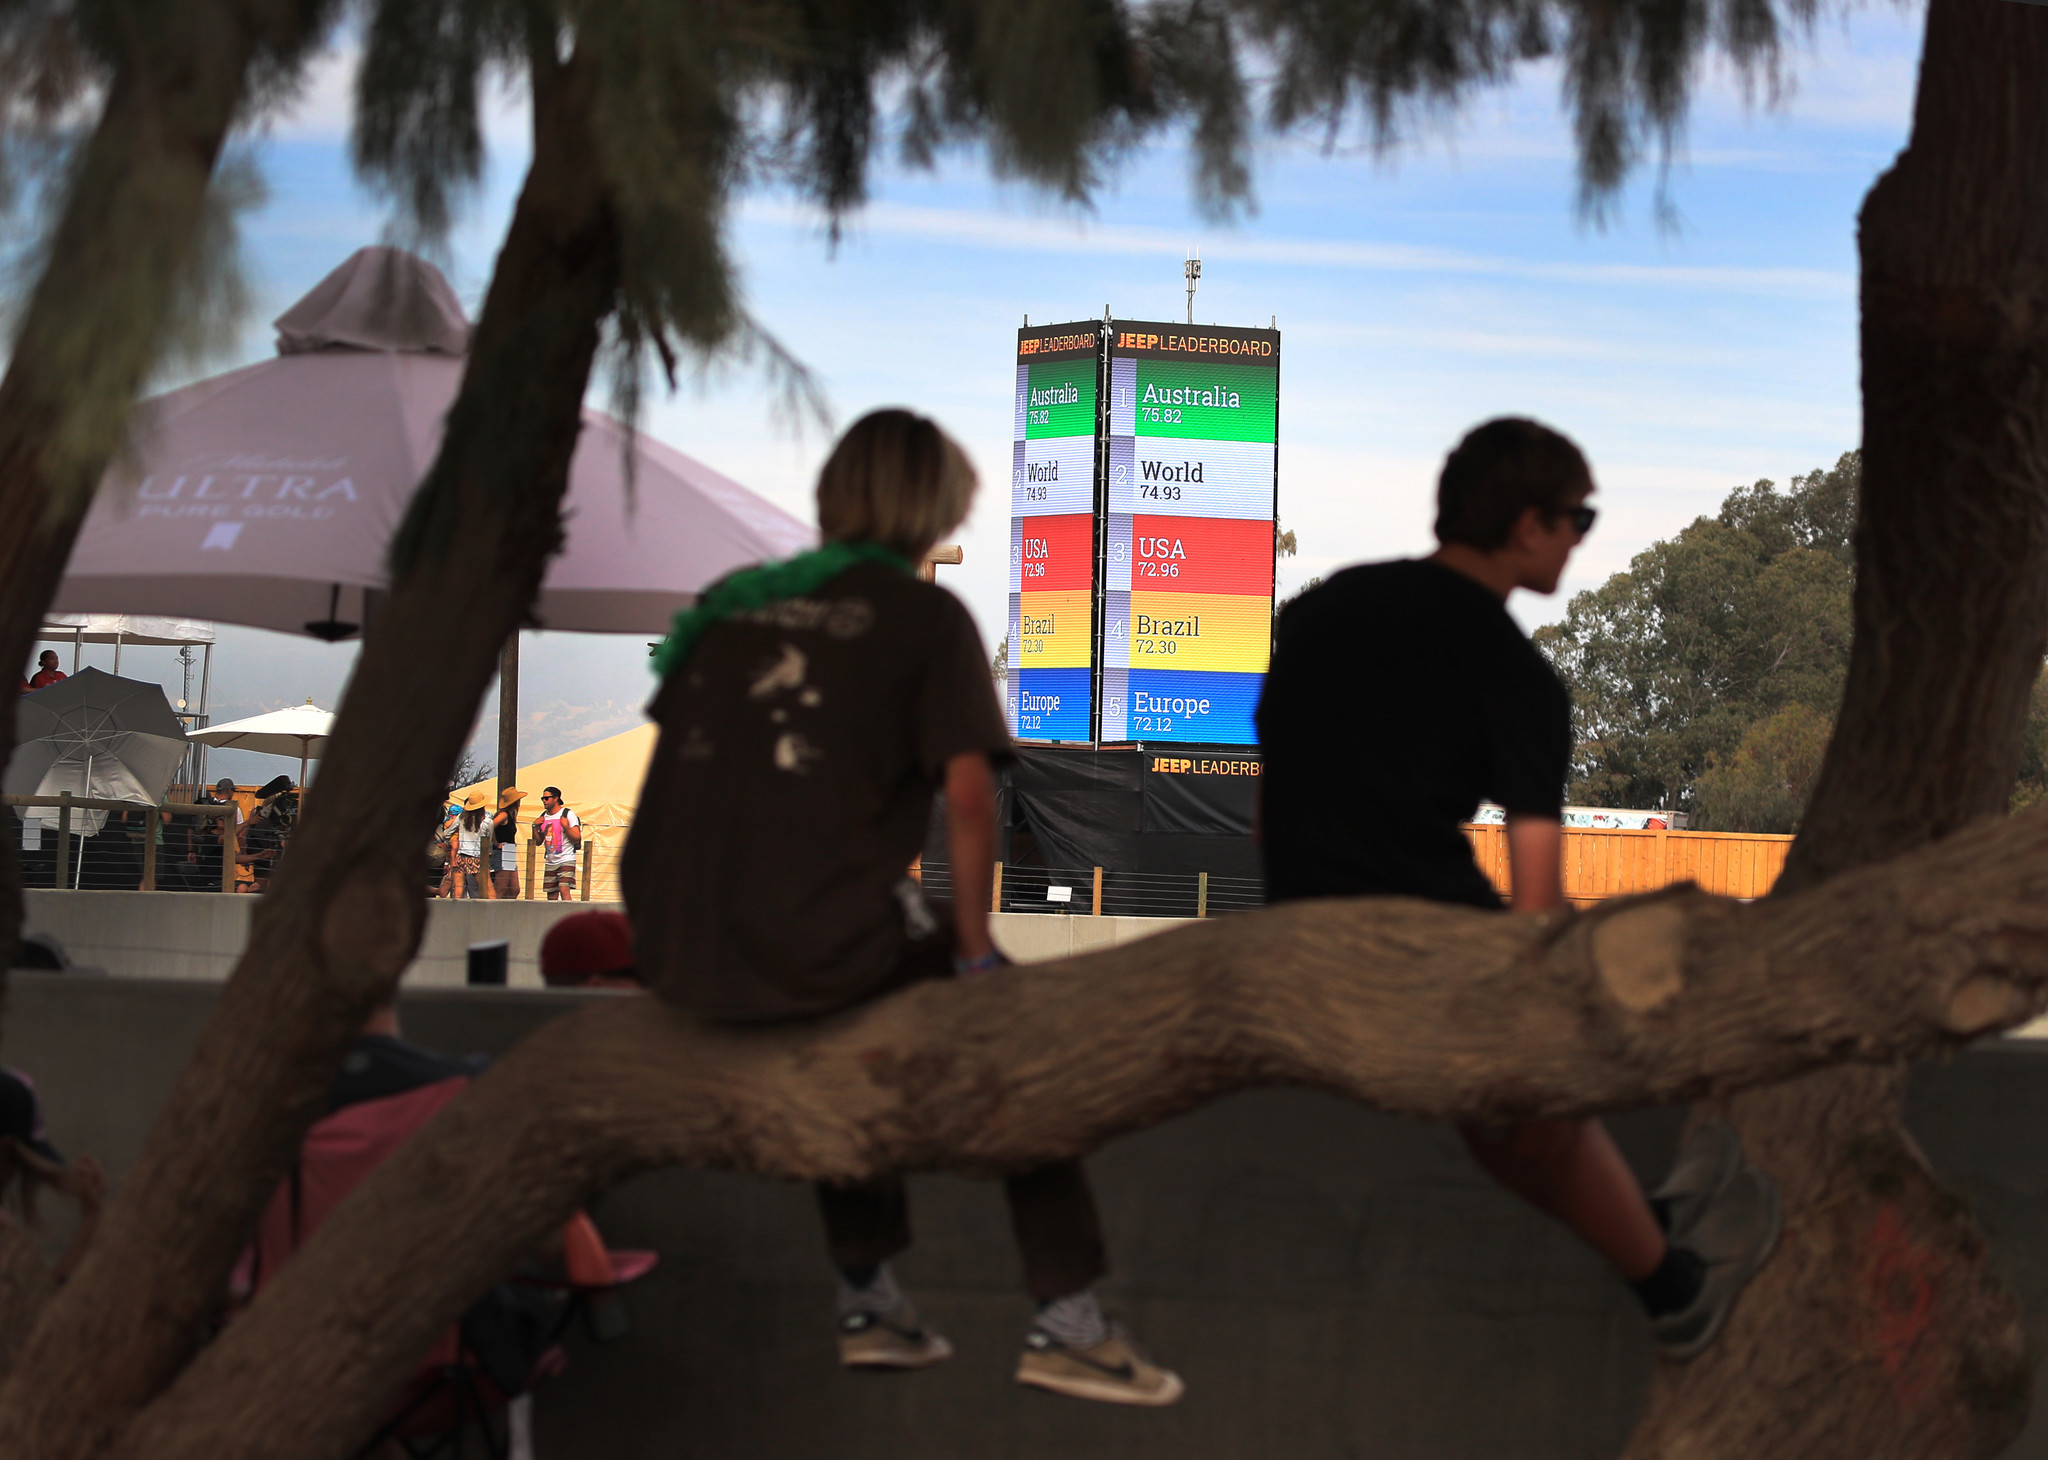 LEMOORE, CALIF. -- SATURDAY, MAY 5, 2018: With a view of the team leader board, fans sit in trees an